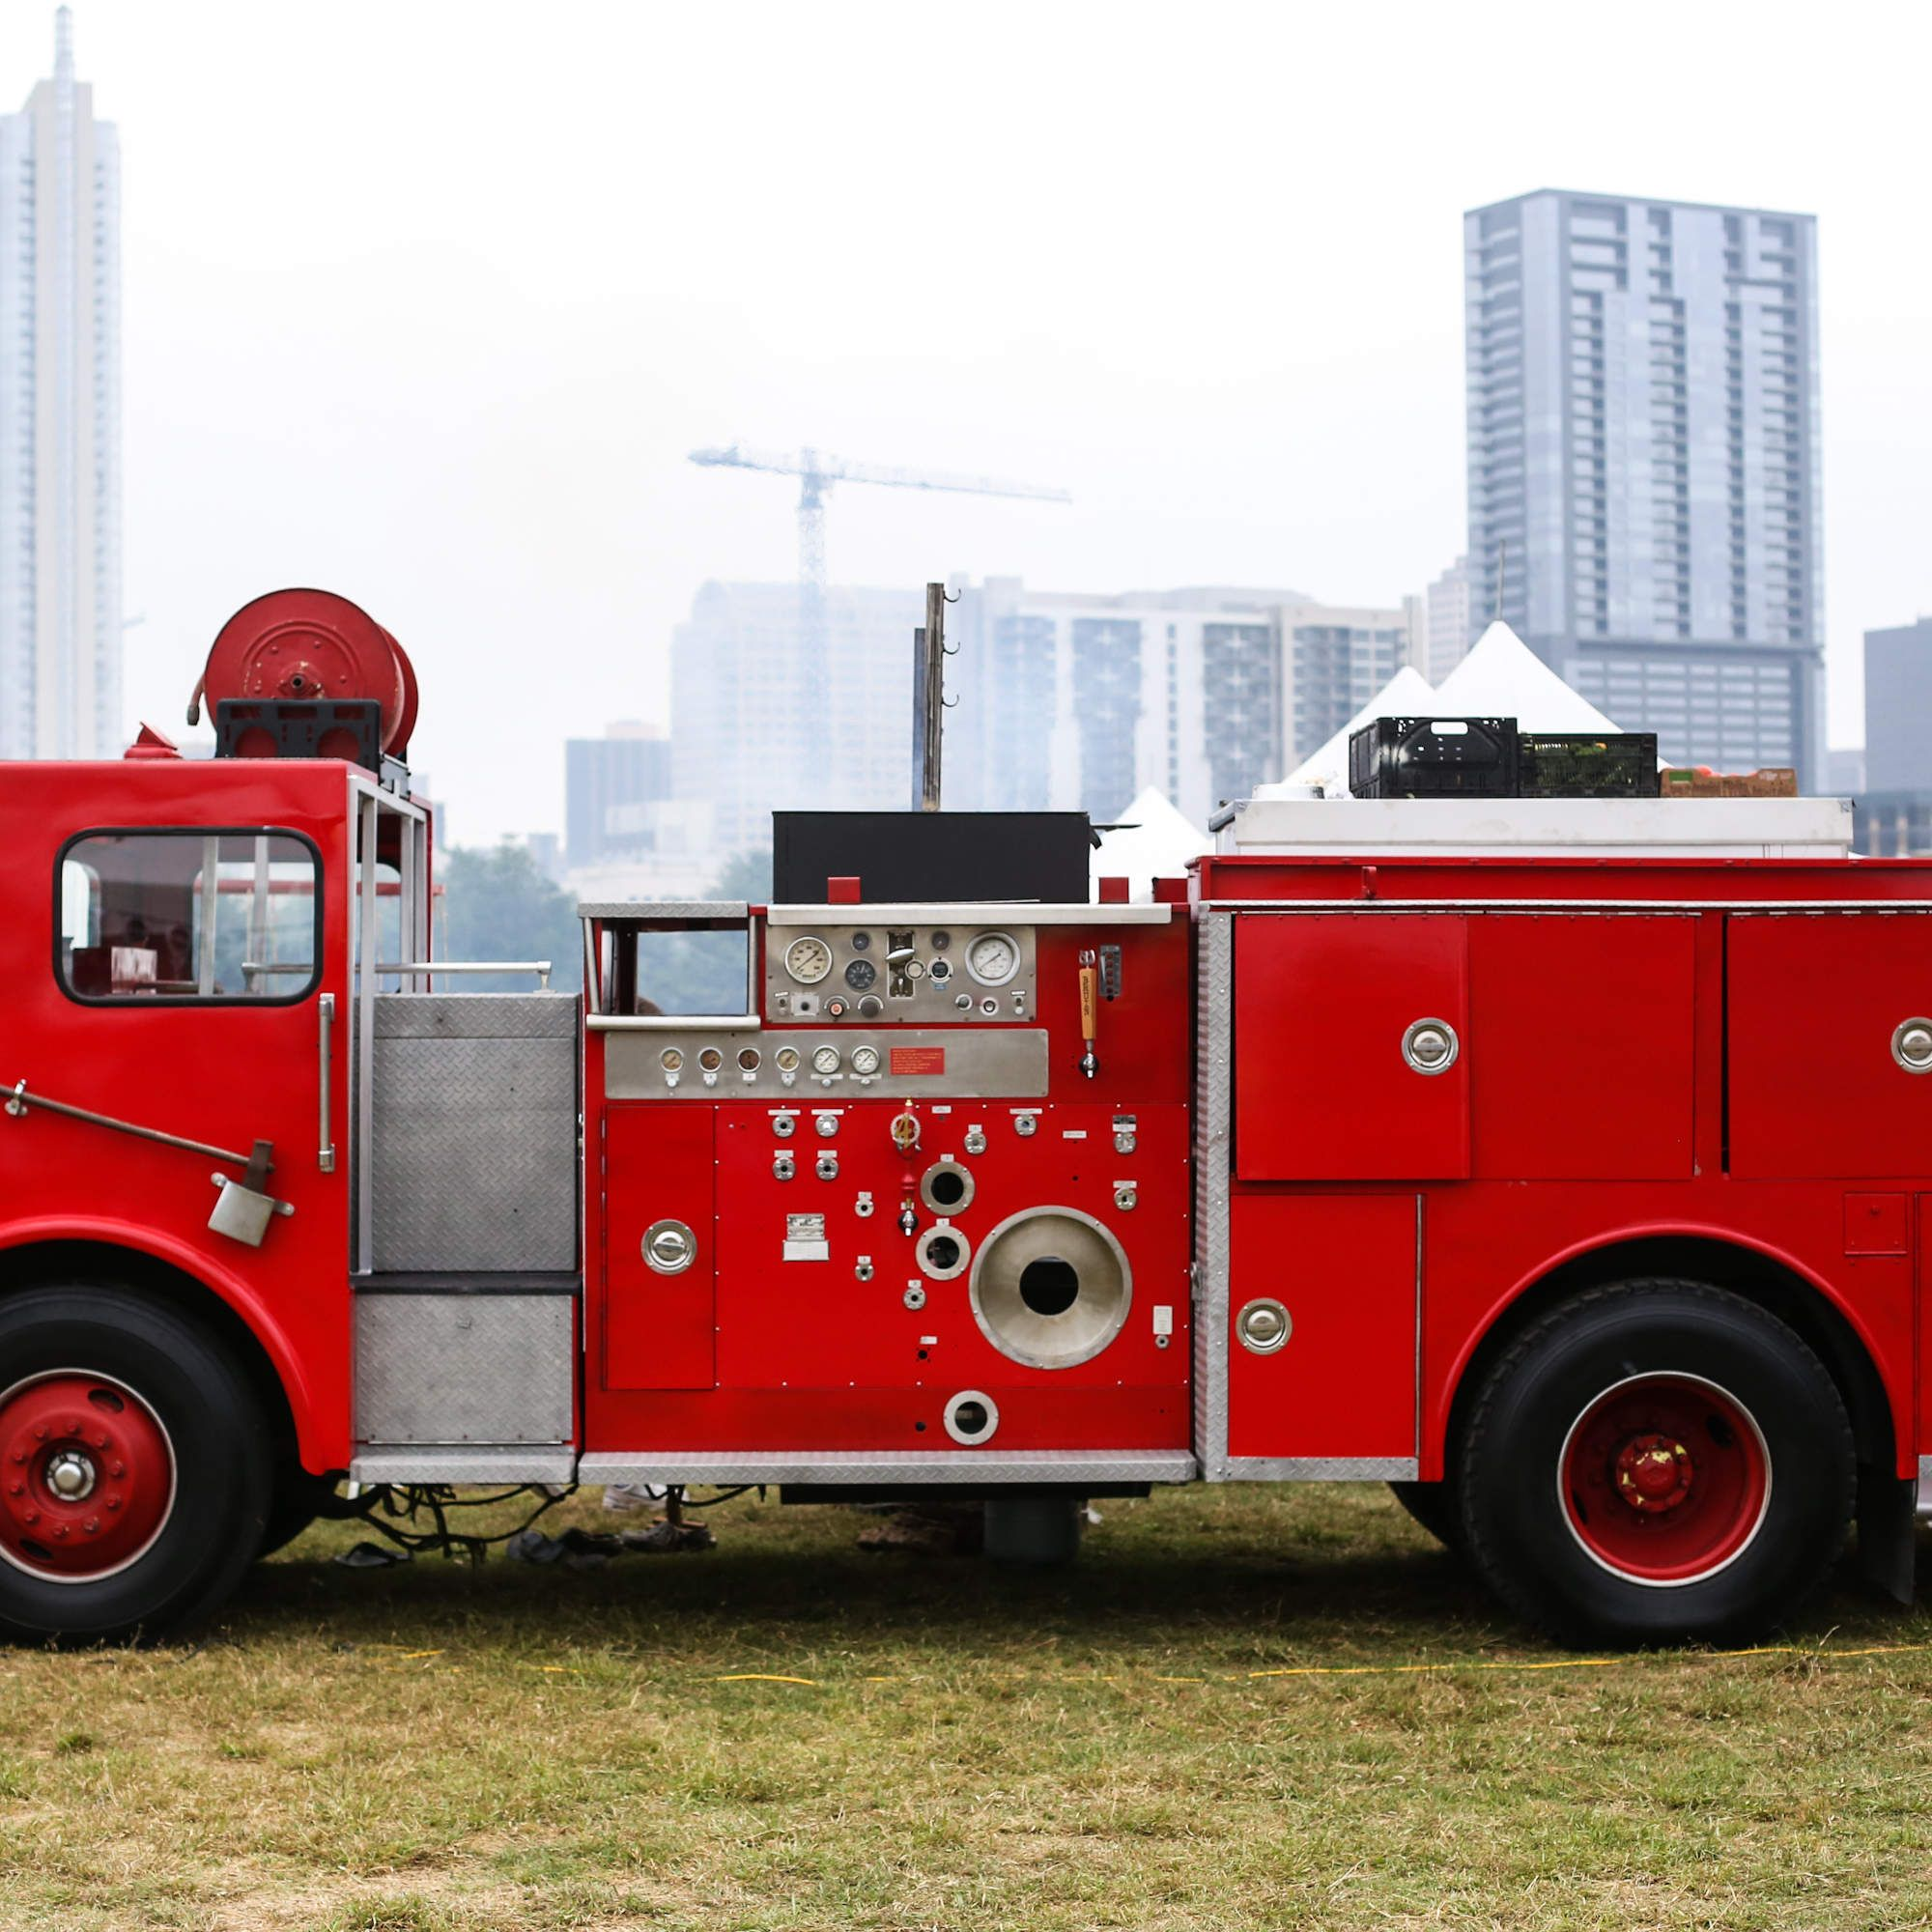 This Fire Truck Is The Ultimate Tailgating Vehicle Can Actually Put Out Fires Fire Trucks Trucks Tailgating